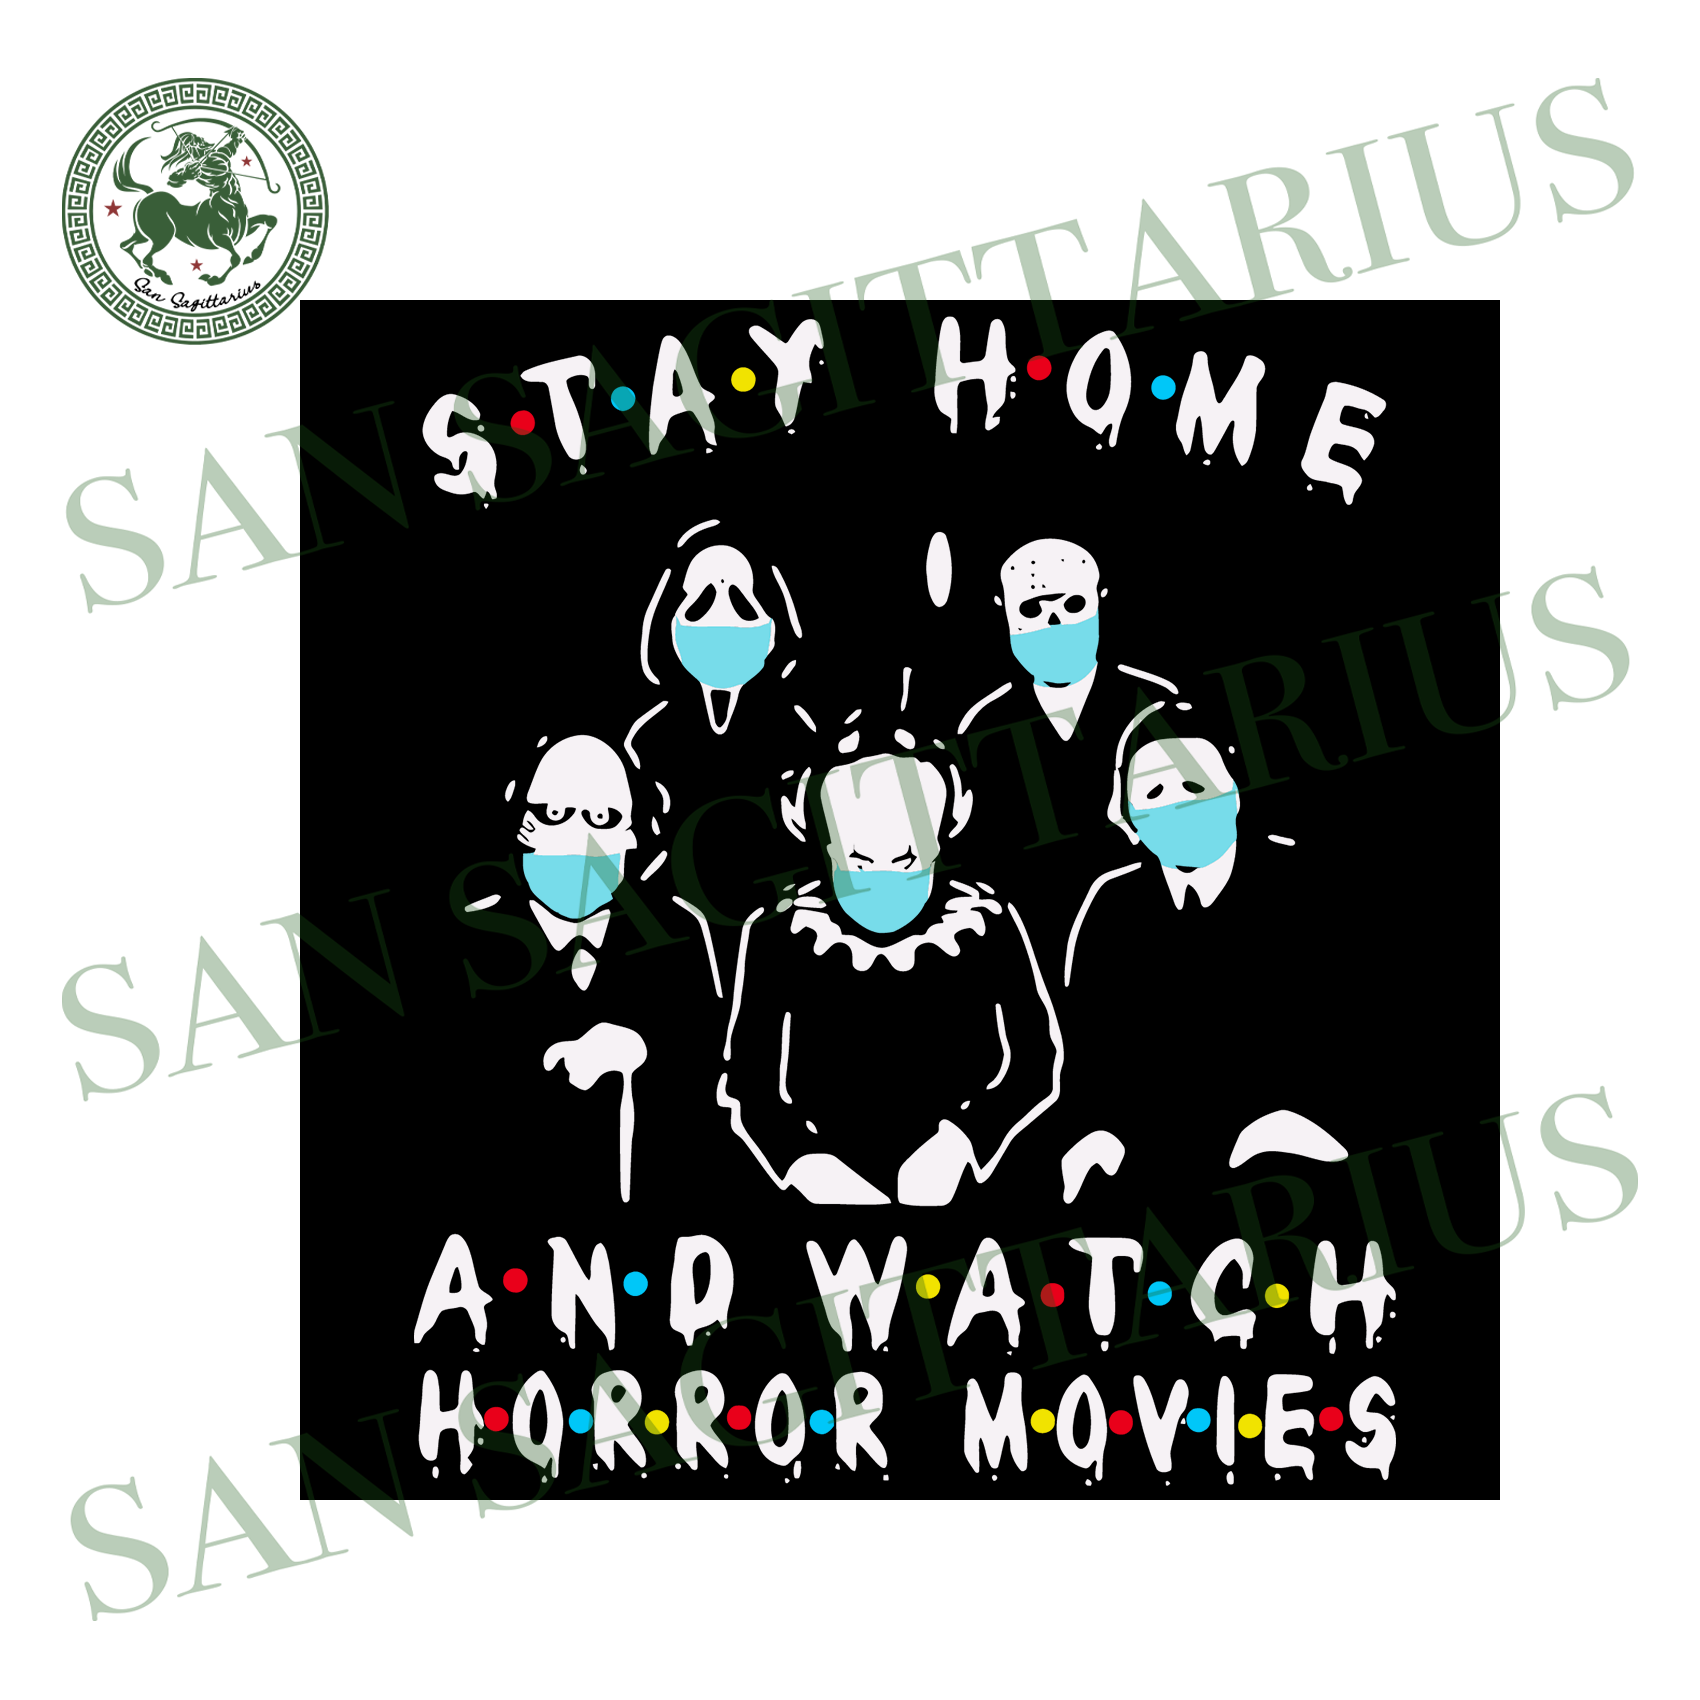 Stay Home And Watch Horror Movies Mask Svg,Horror Characters Svg,Stay Home And Watch Horror Movies Svg,Horror Movies Svg,Stay Home Svg,Halloween Shirt,Halloween Gift